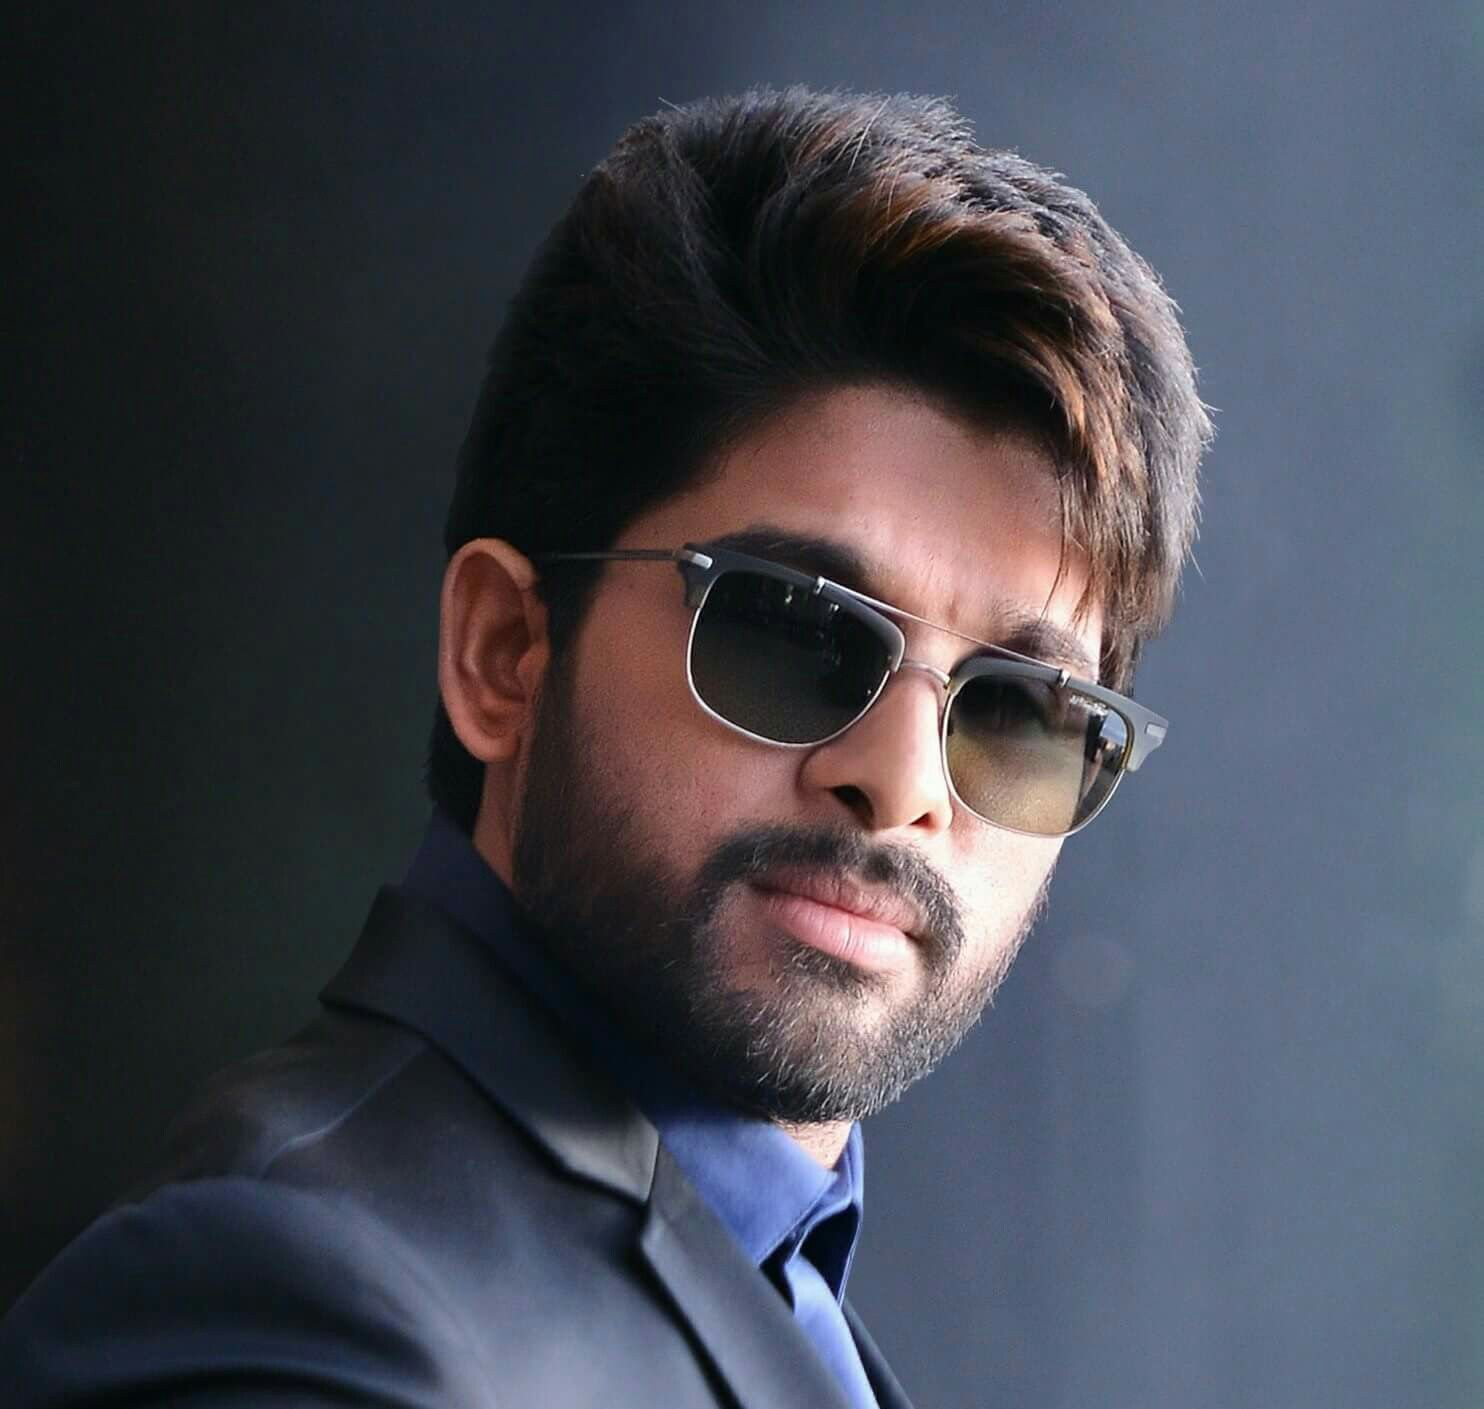 Allu arjun dj photos hd